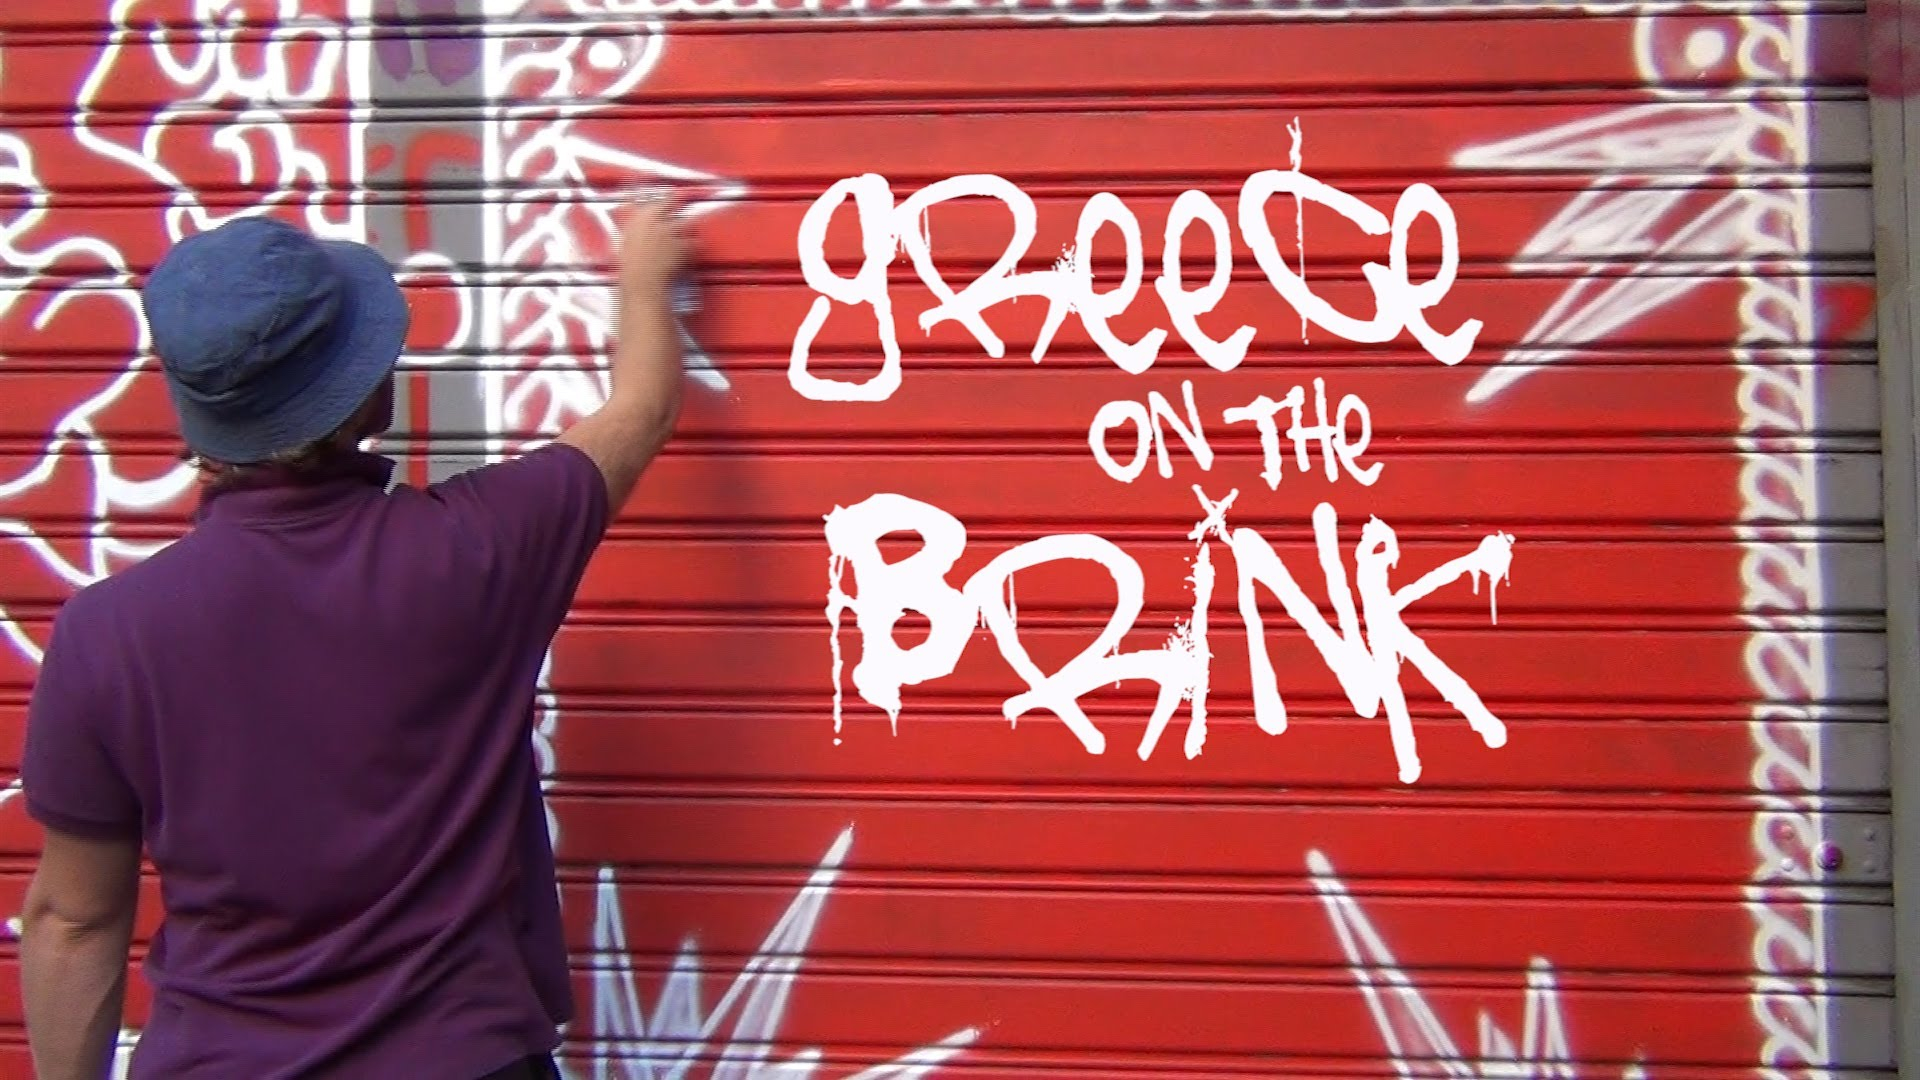 Greece on the Brink – Documentary